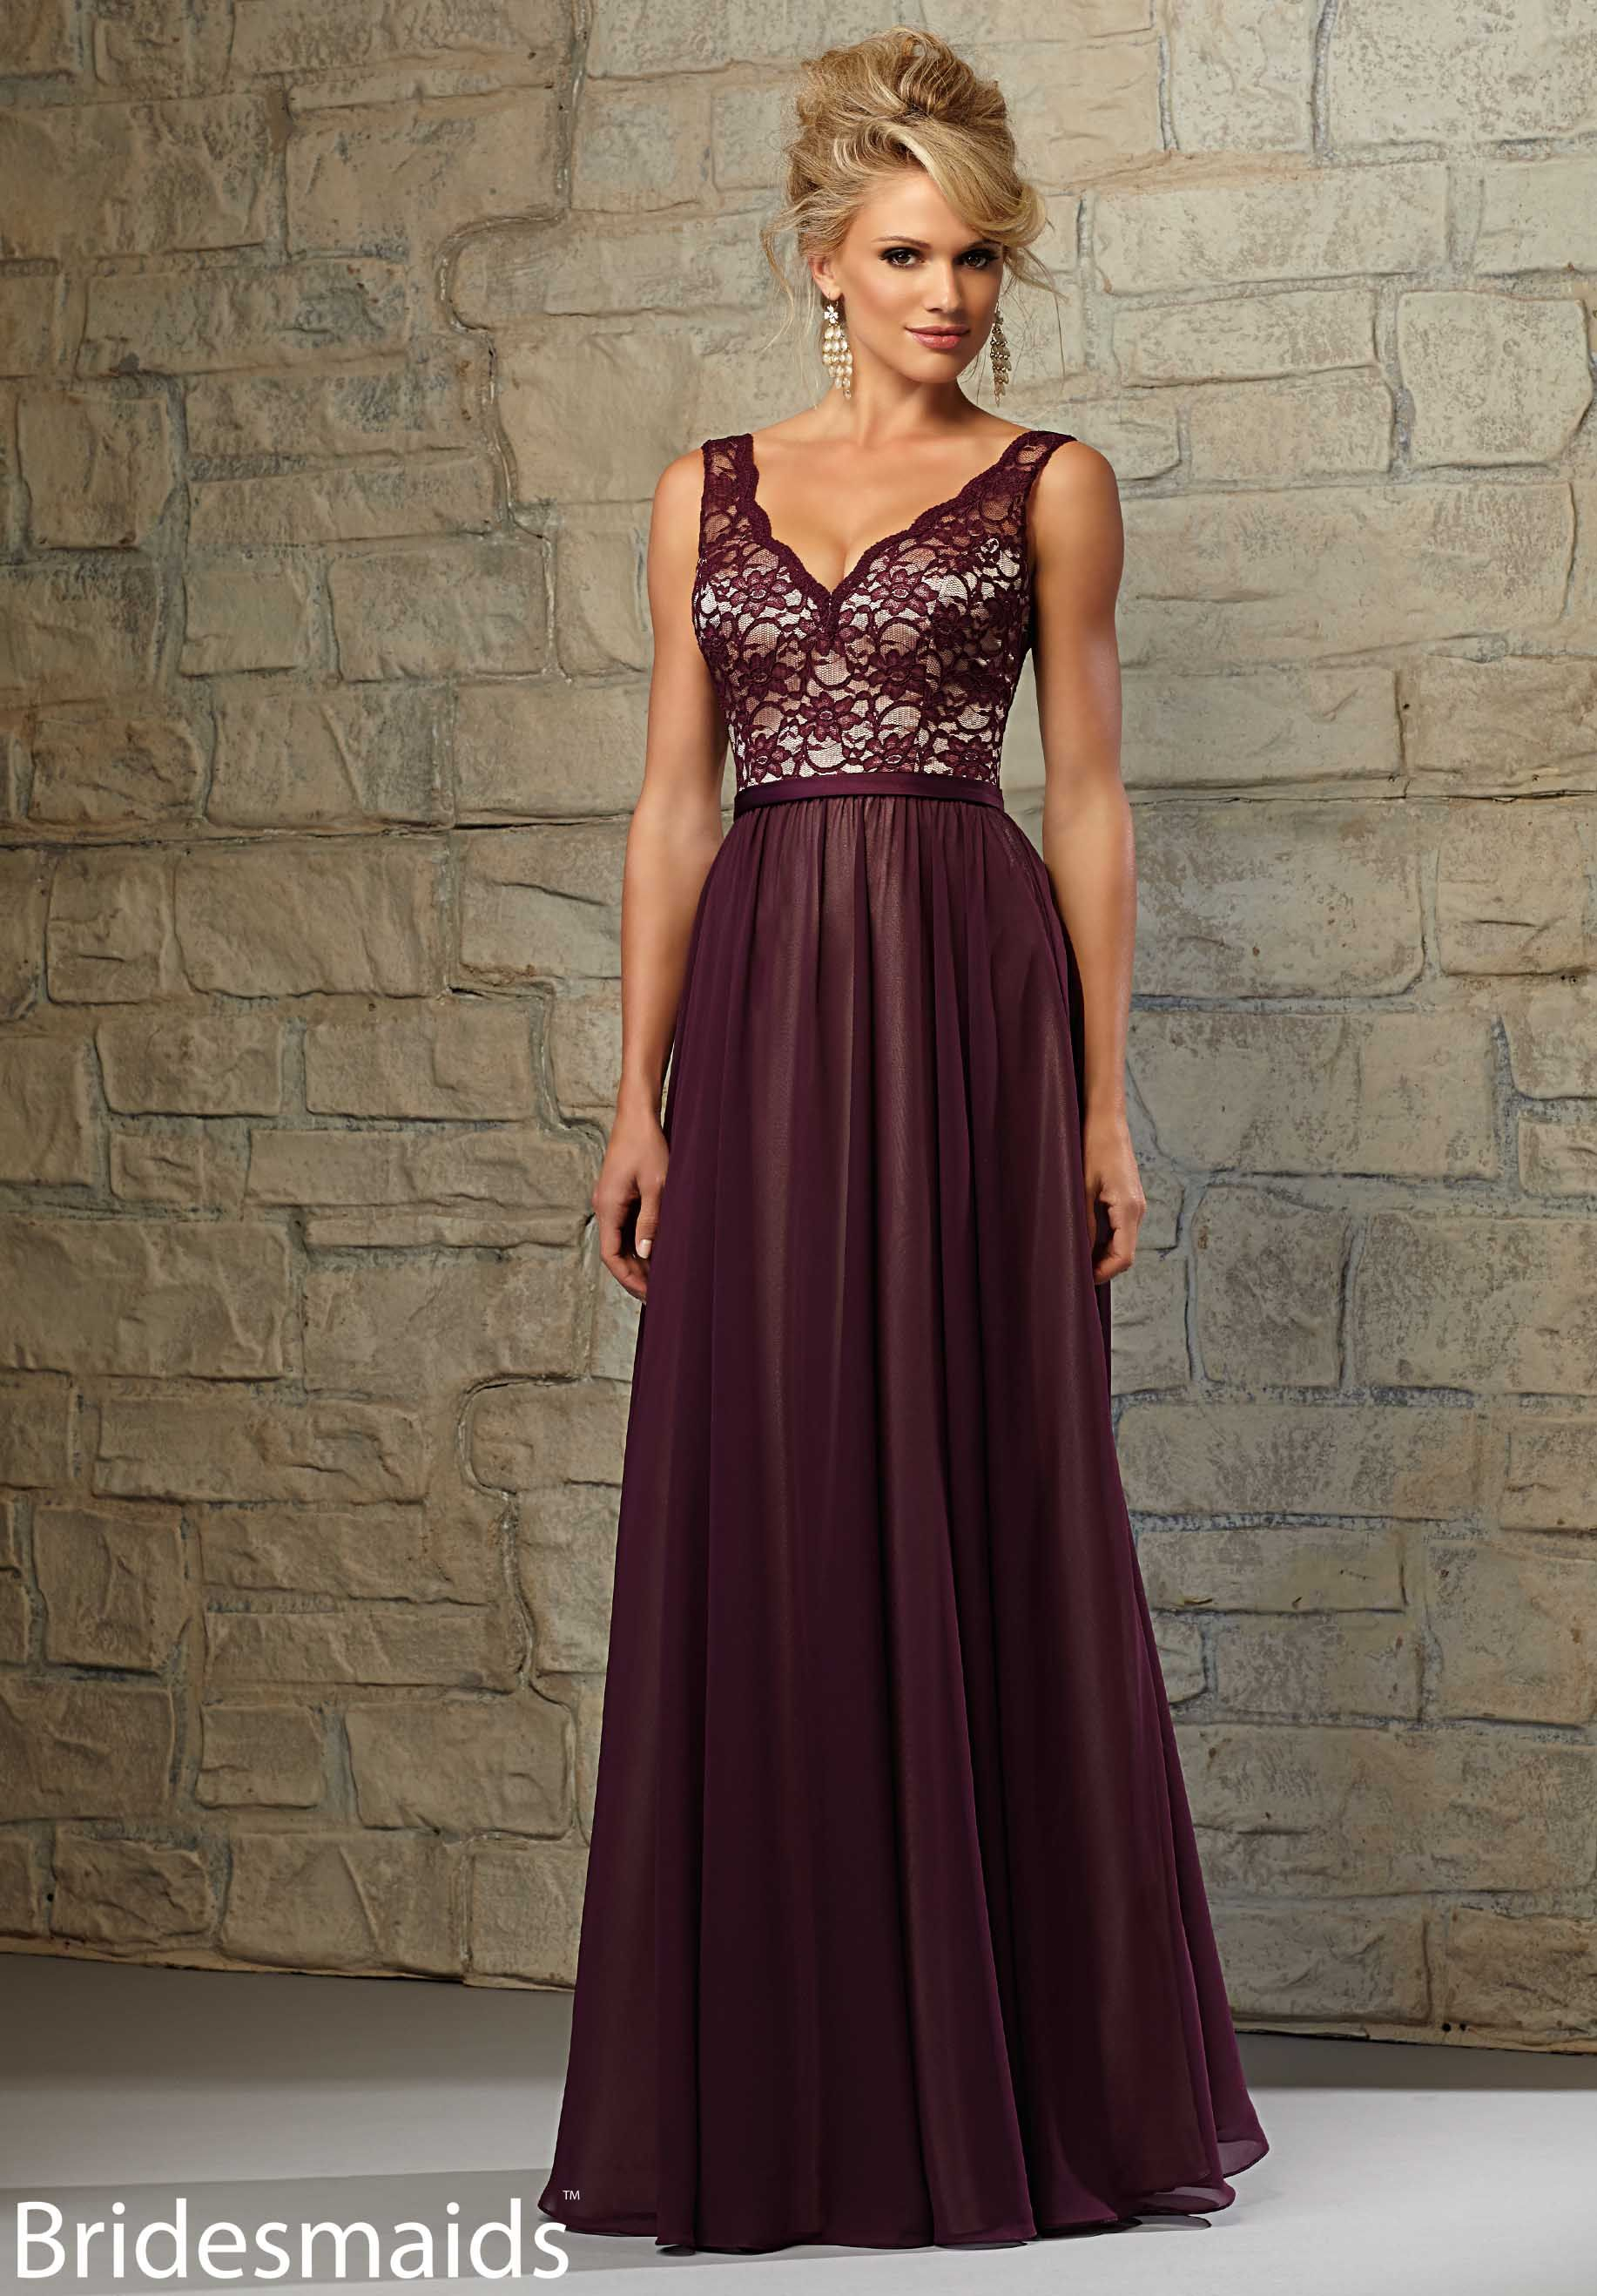 Bridesmaids Dresses Lace Bodice with Chiffon Skirt over Nude Lining ...